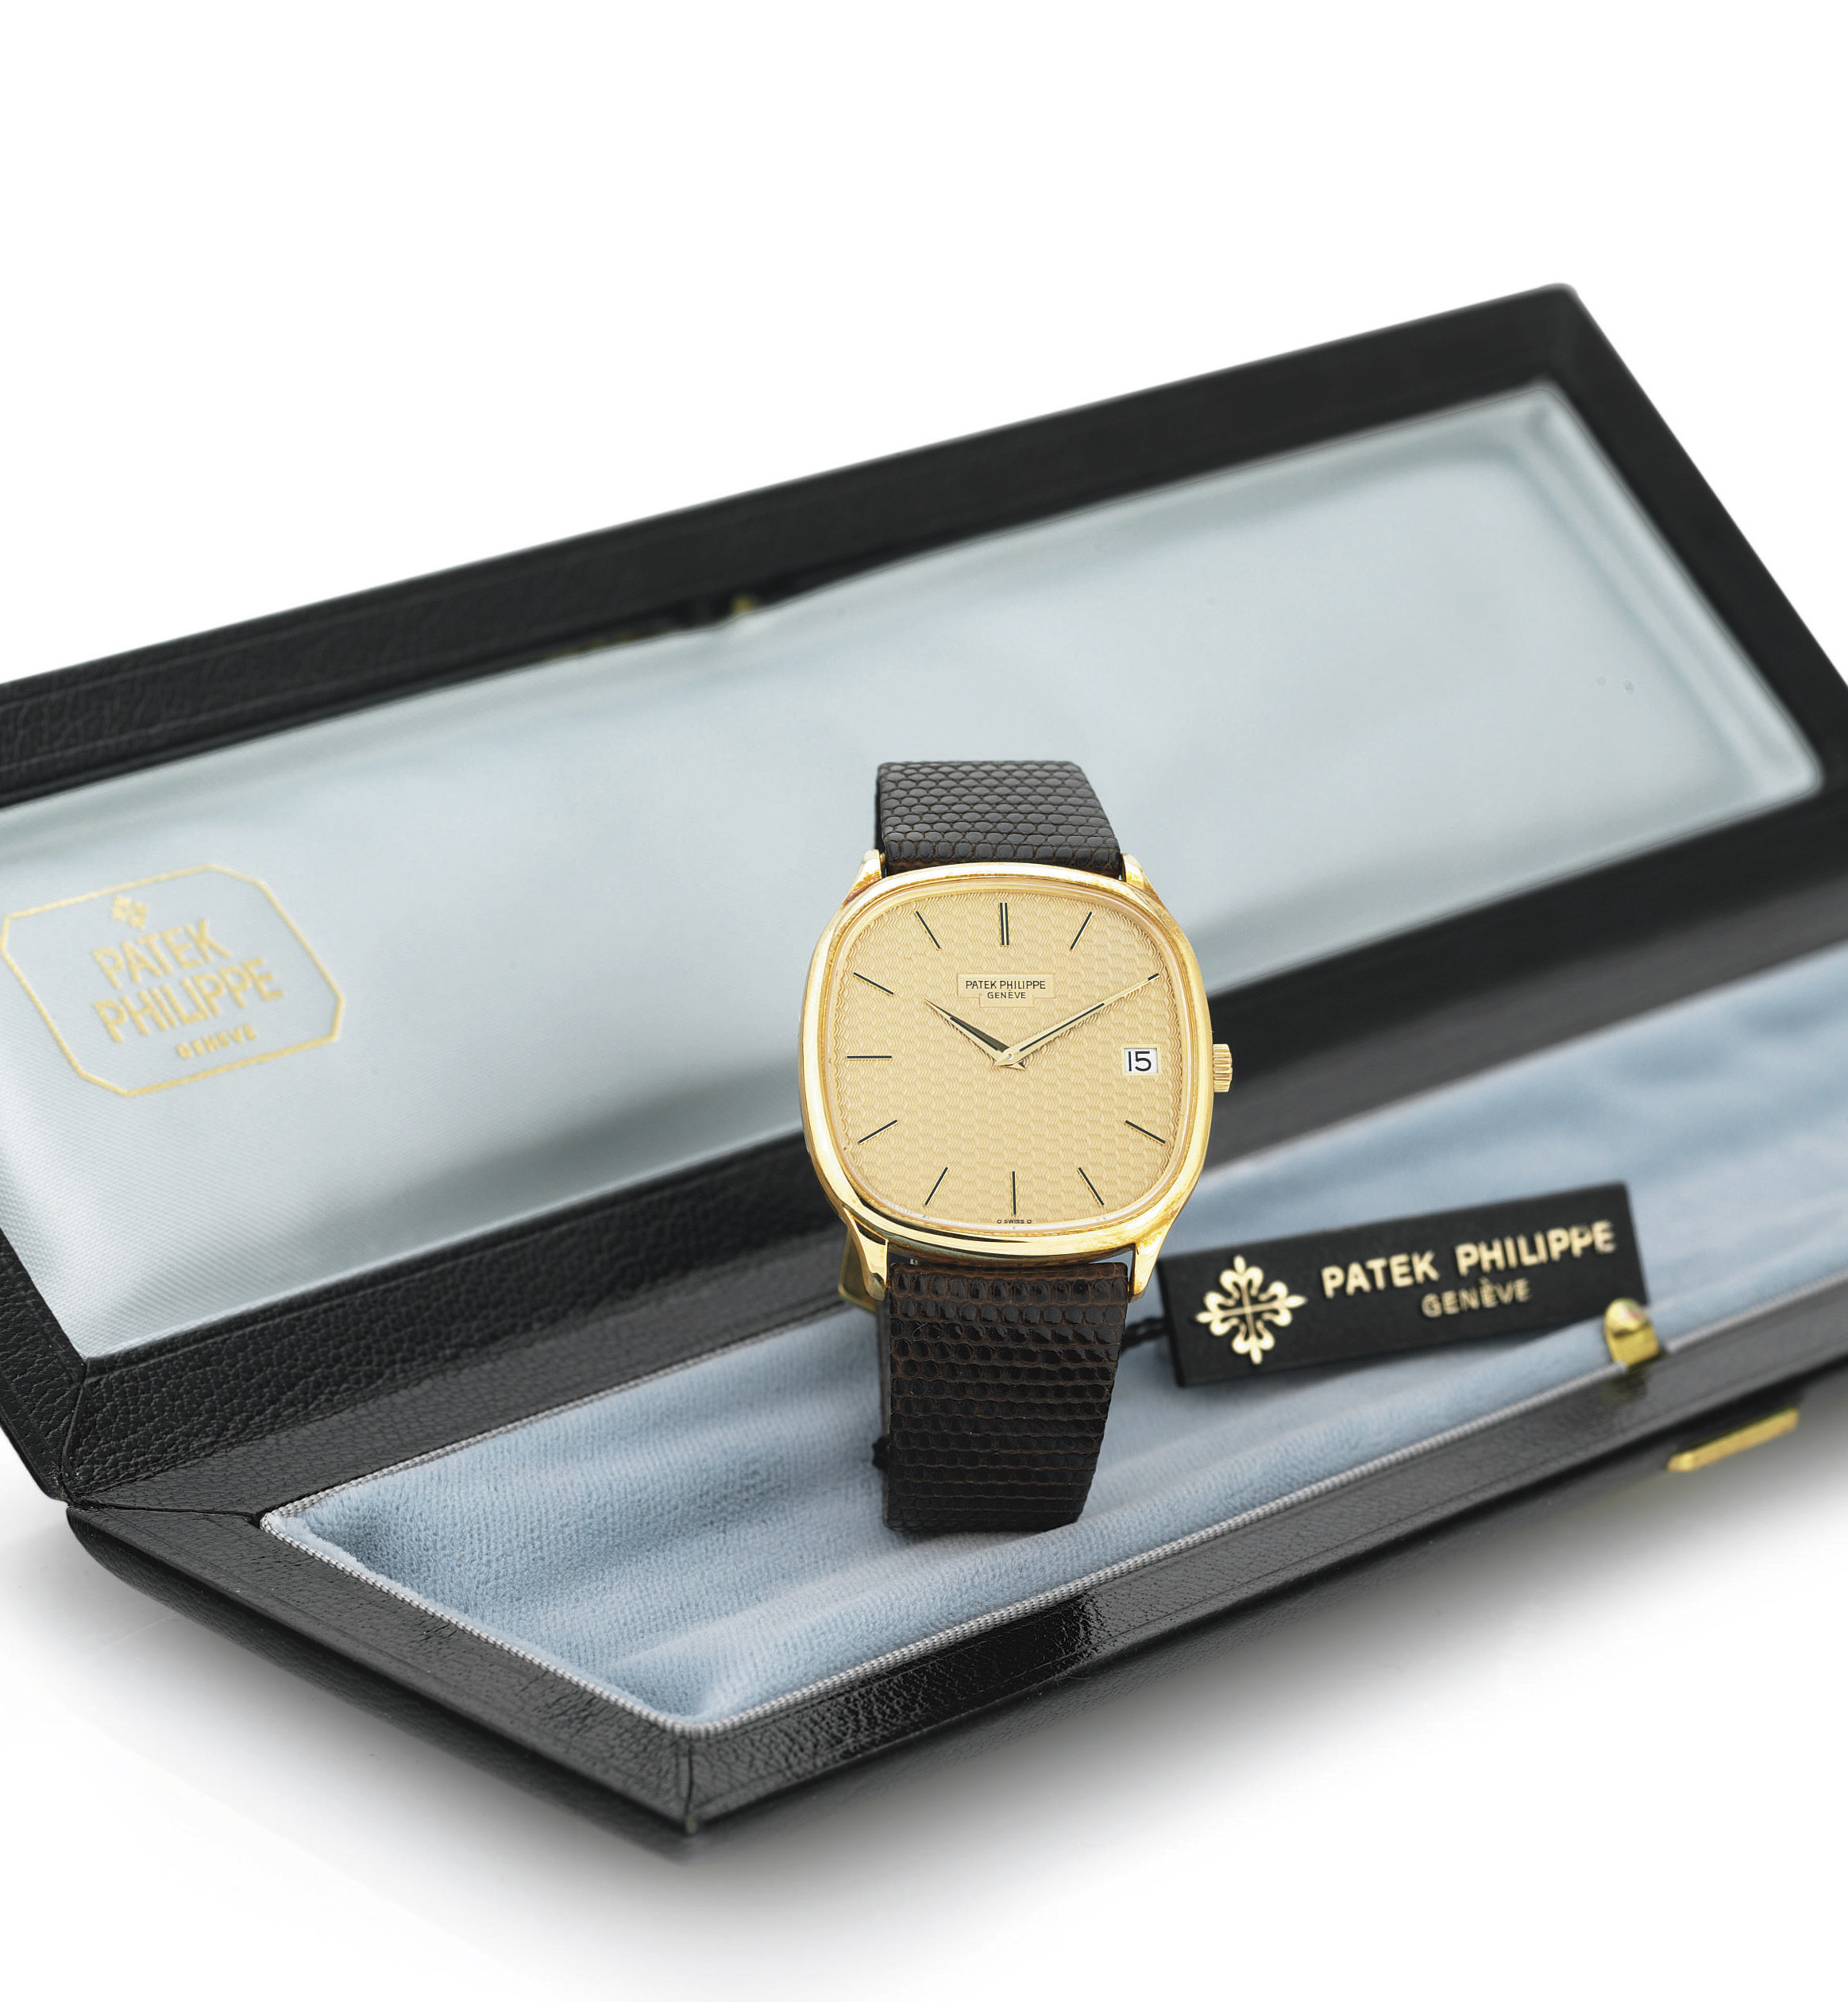 PATEK PHILIPPE. A FINE AND RARE 18K PINK GOLD CUSHION AUTOMATIC WRISTWATCH WITH DATE